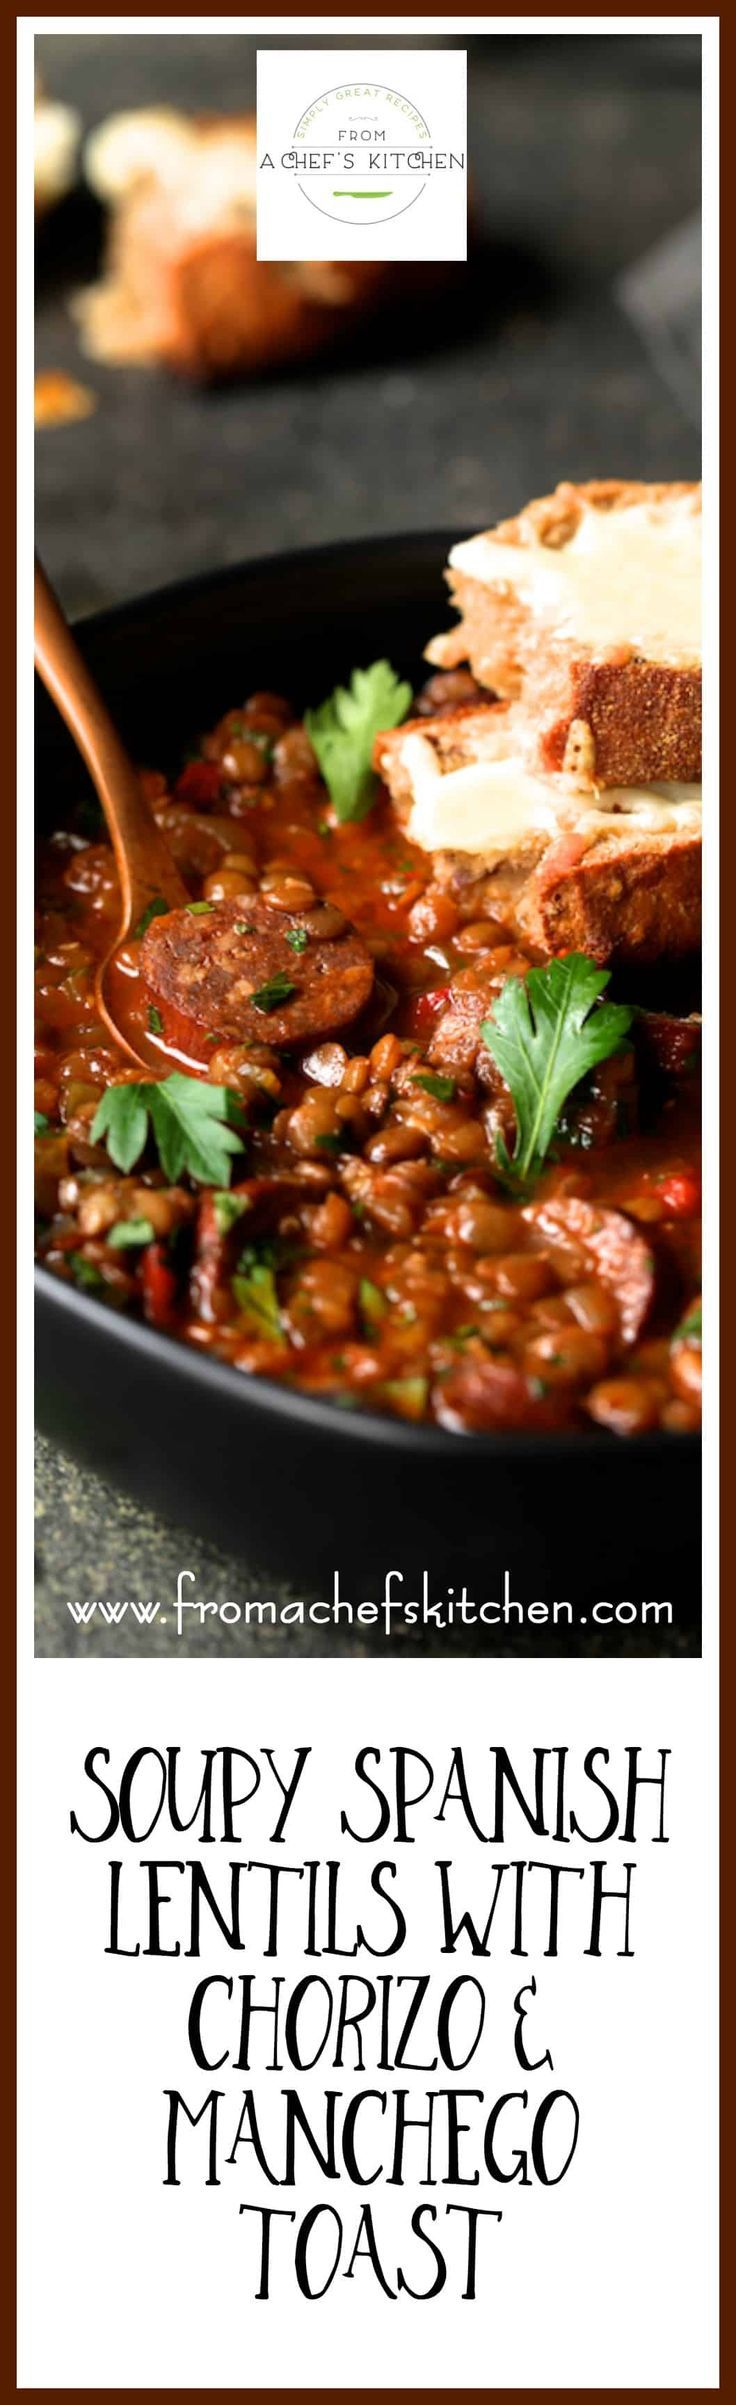 Soupy Spanish Lentils with Chorizo and Manchego Toast will have you not minding winter! Braised lentils with spicy chorizo sausage kicked up with red wine and Spanish spices and topped with melted Manchego cheese over crusty bread is perfect winter comfort food! via @chefcarolb